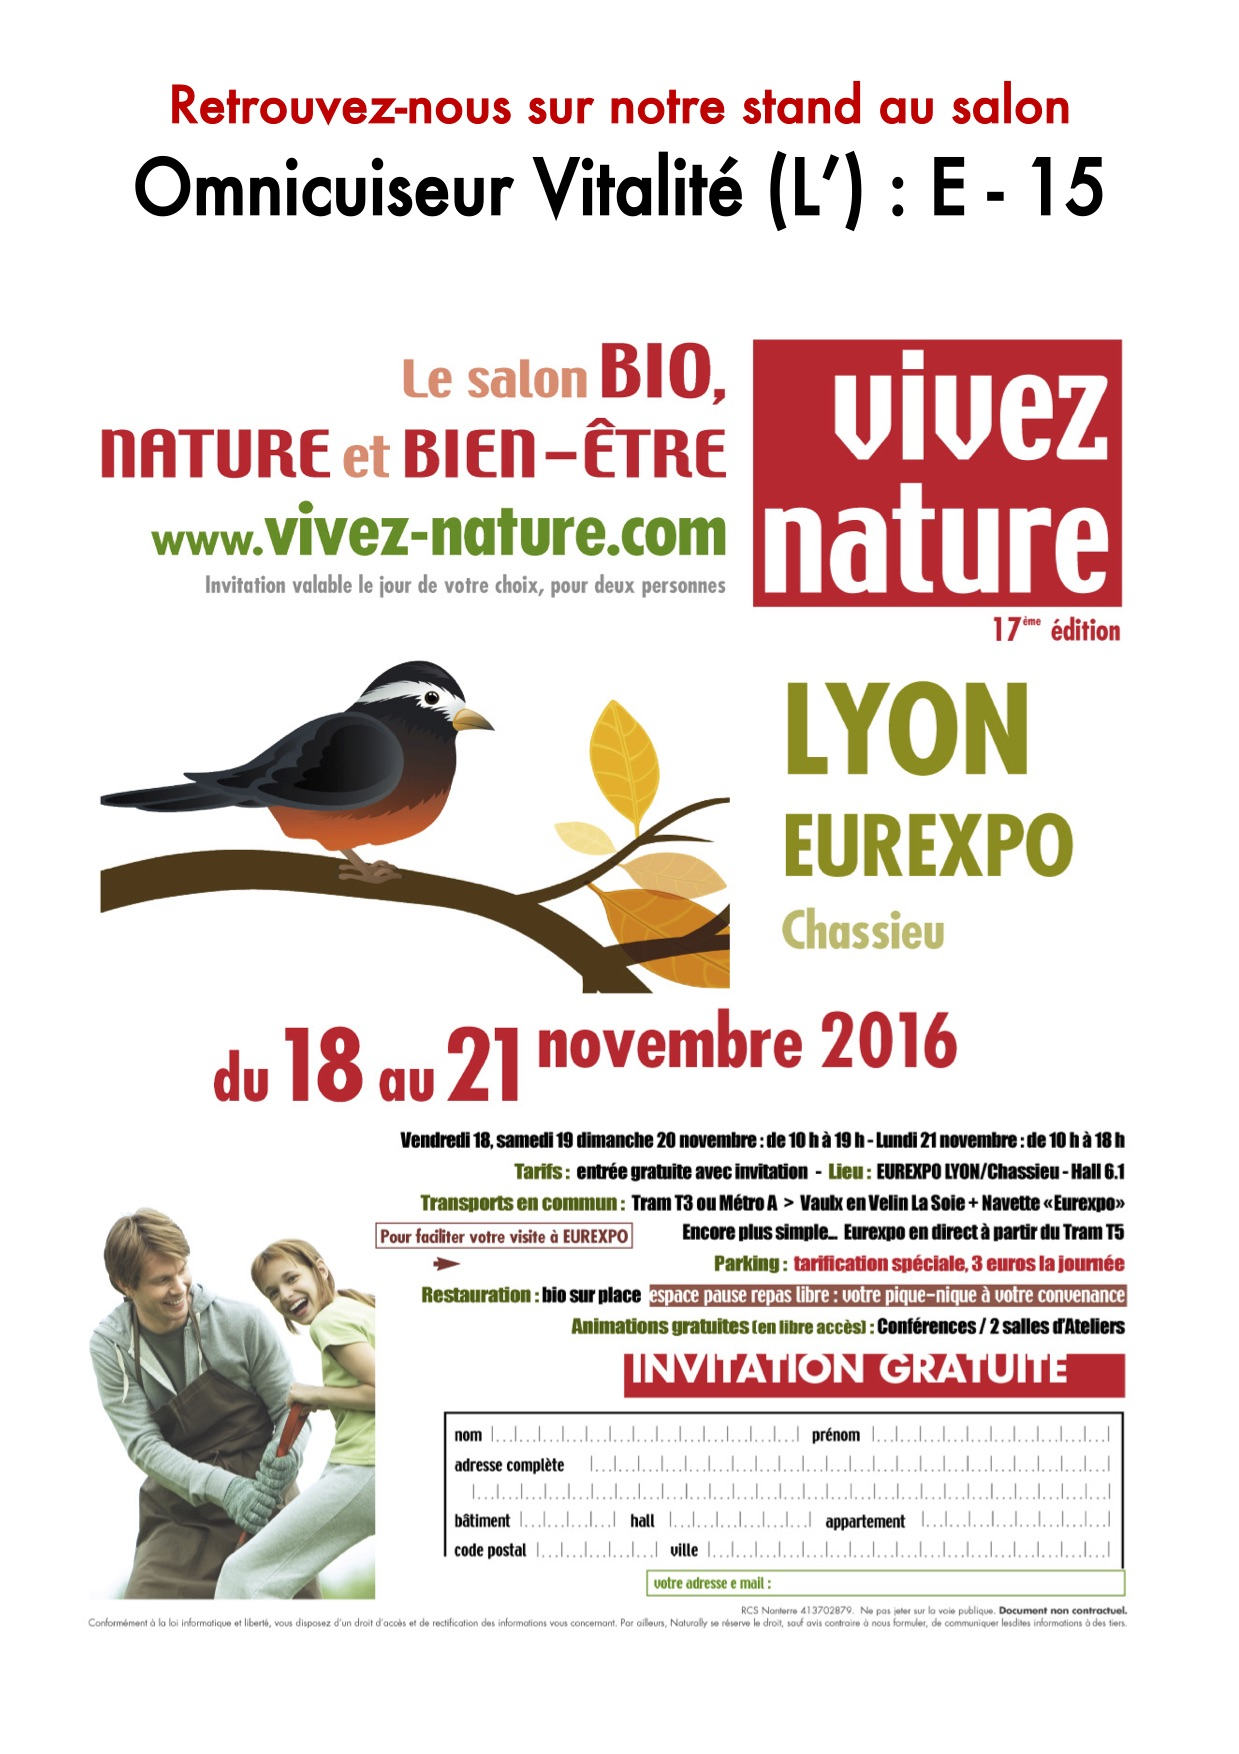 Salon vivez nature 2016 lyon l 39 omnicuiseur vitalit for Salon lyon 2016